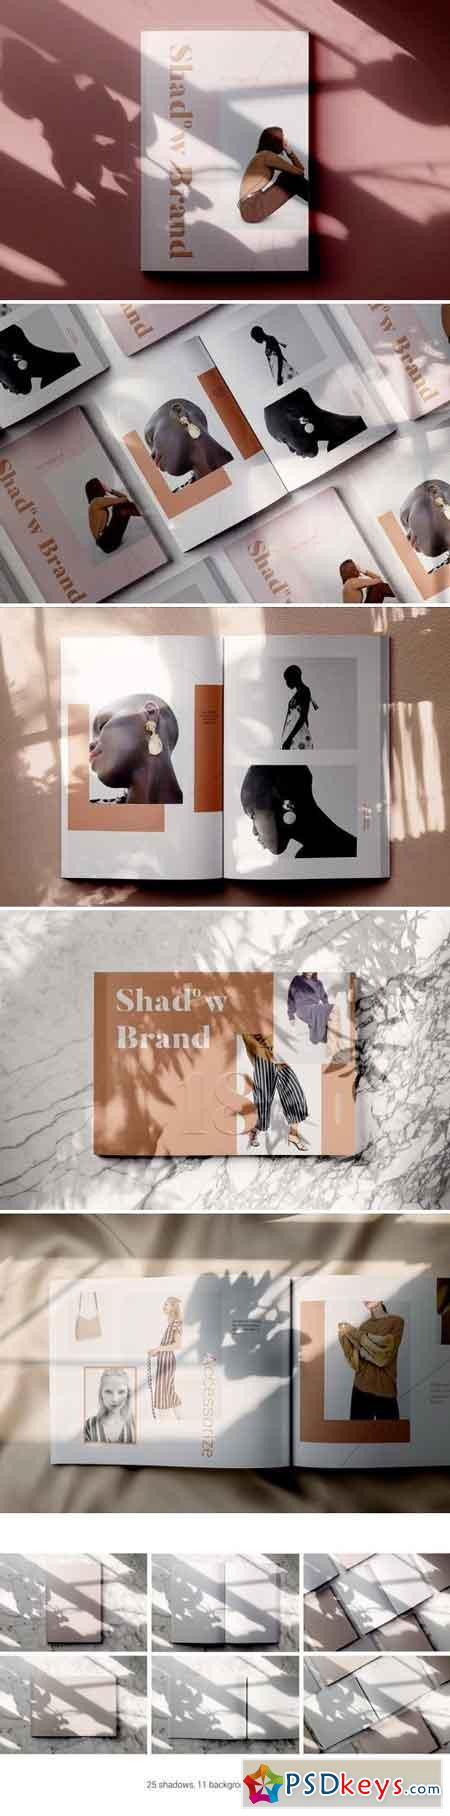 Shadow Brand - Magazine Mockups 2994547